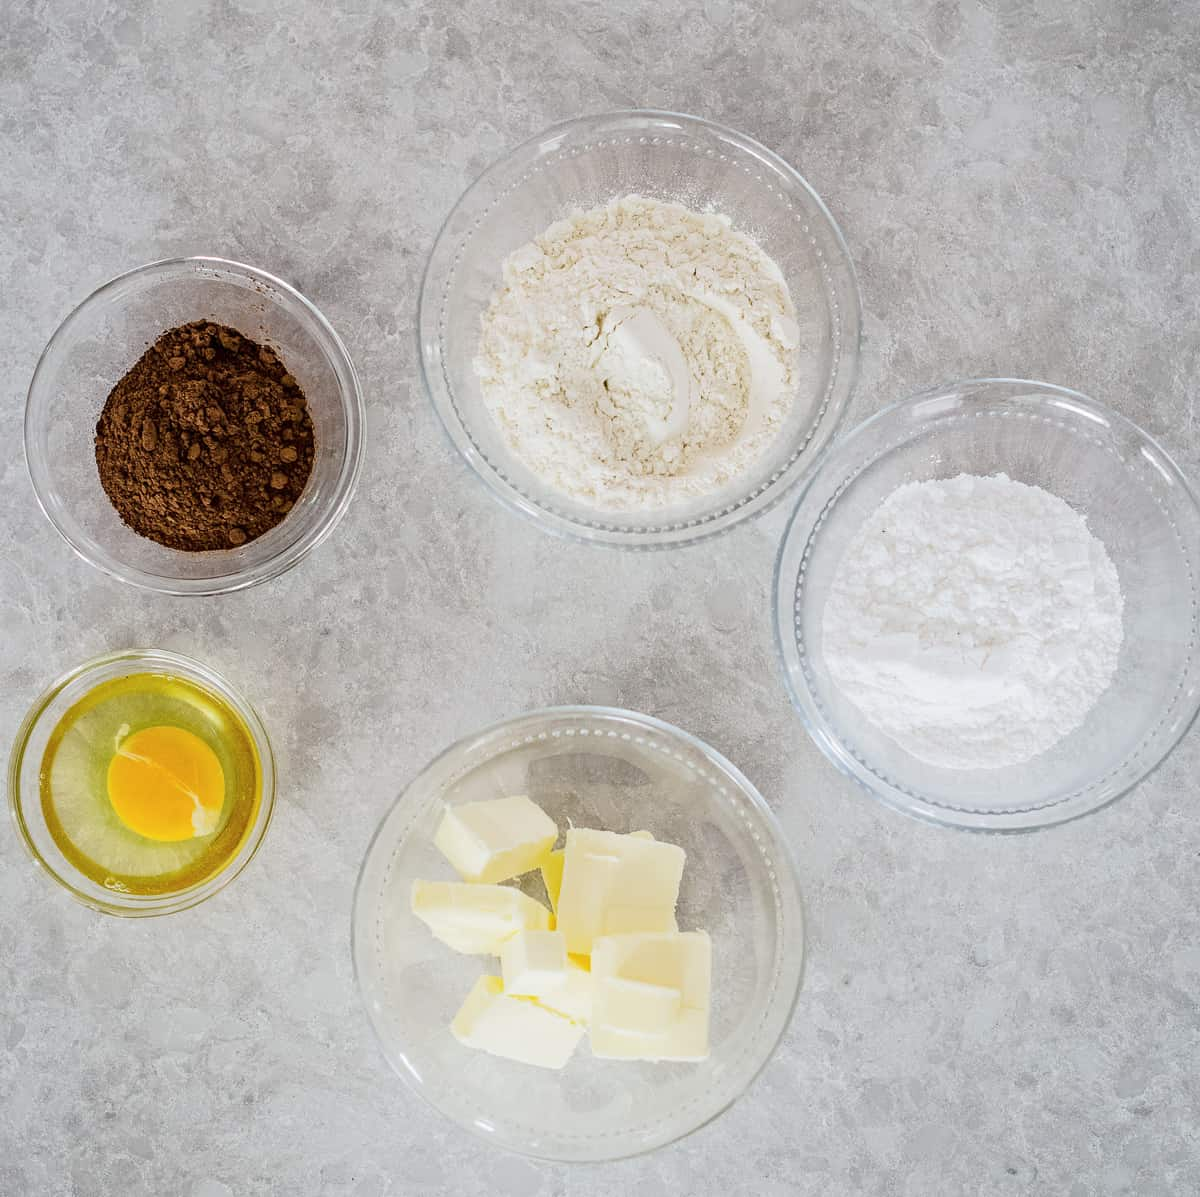 Ingredients for Chocolate Pie Crust